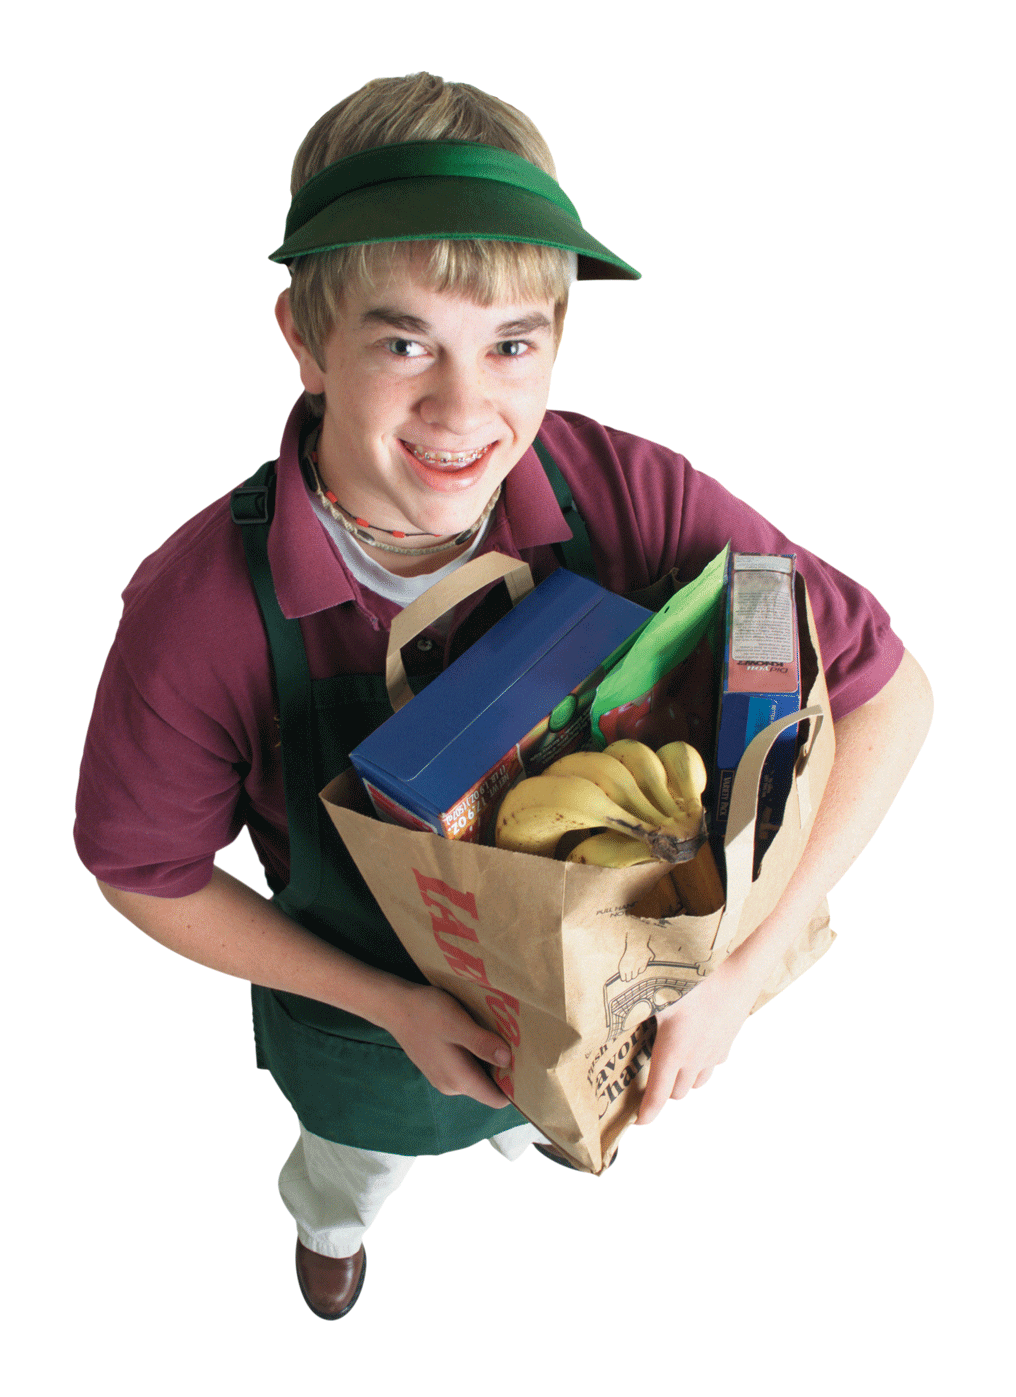 Photo: Boy with grocery bags